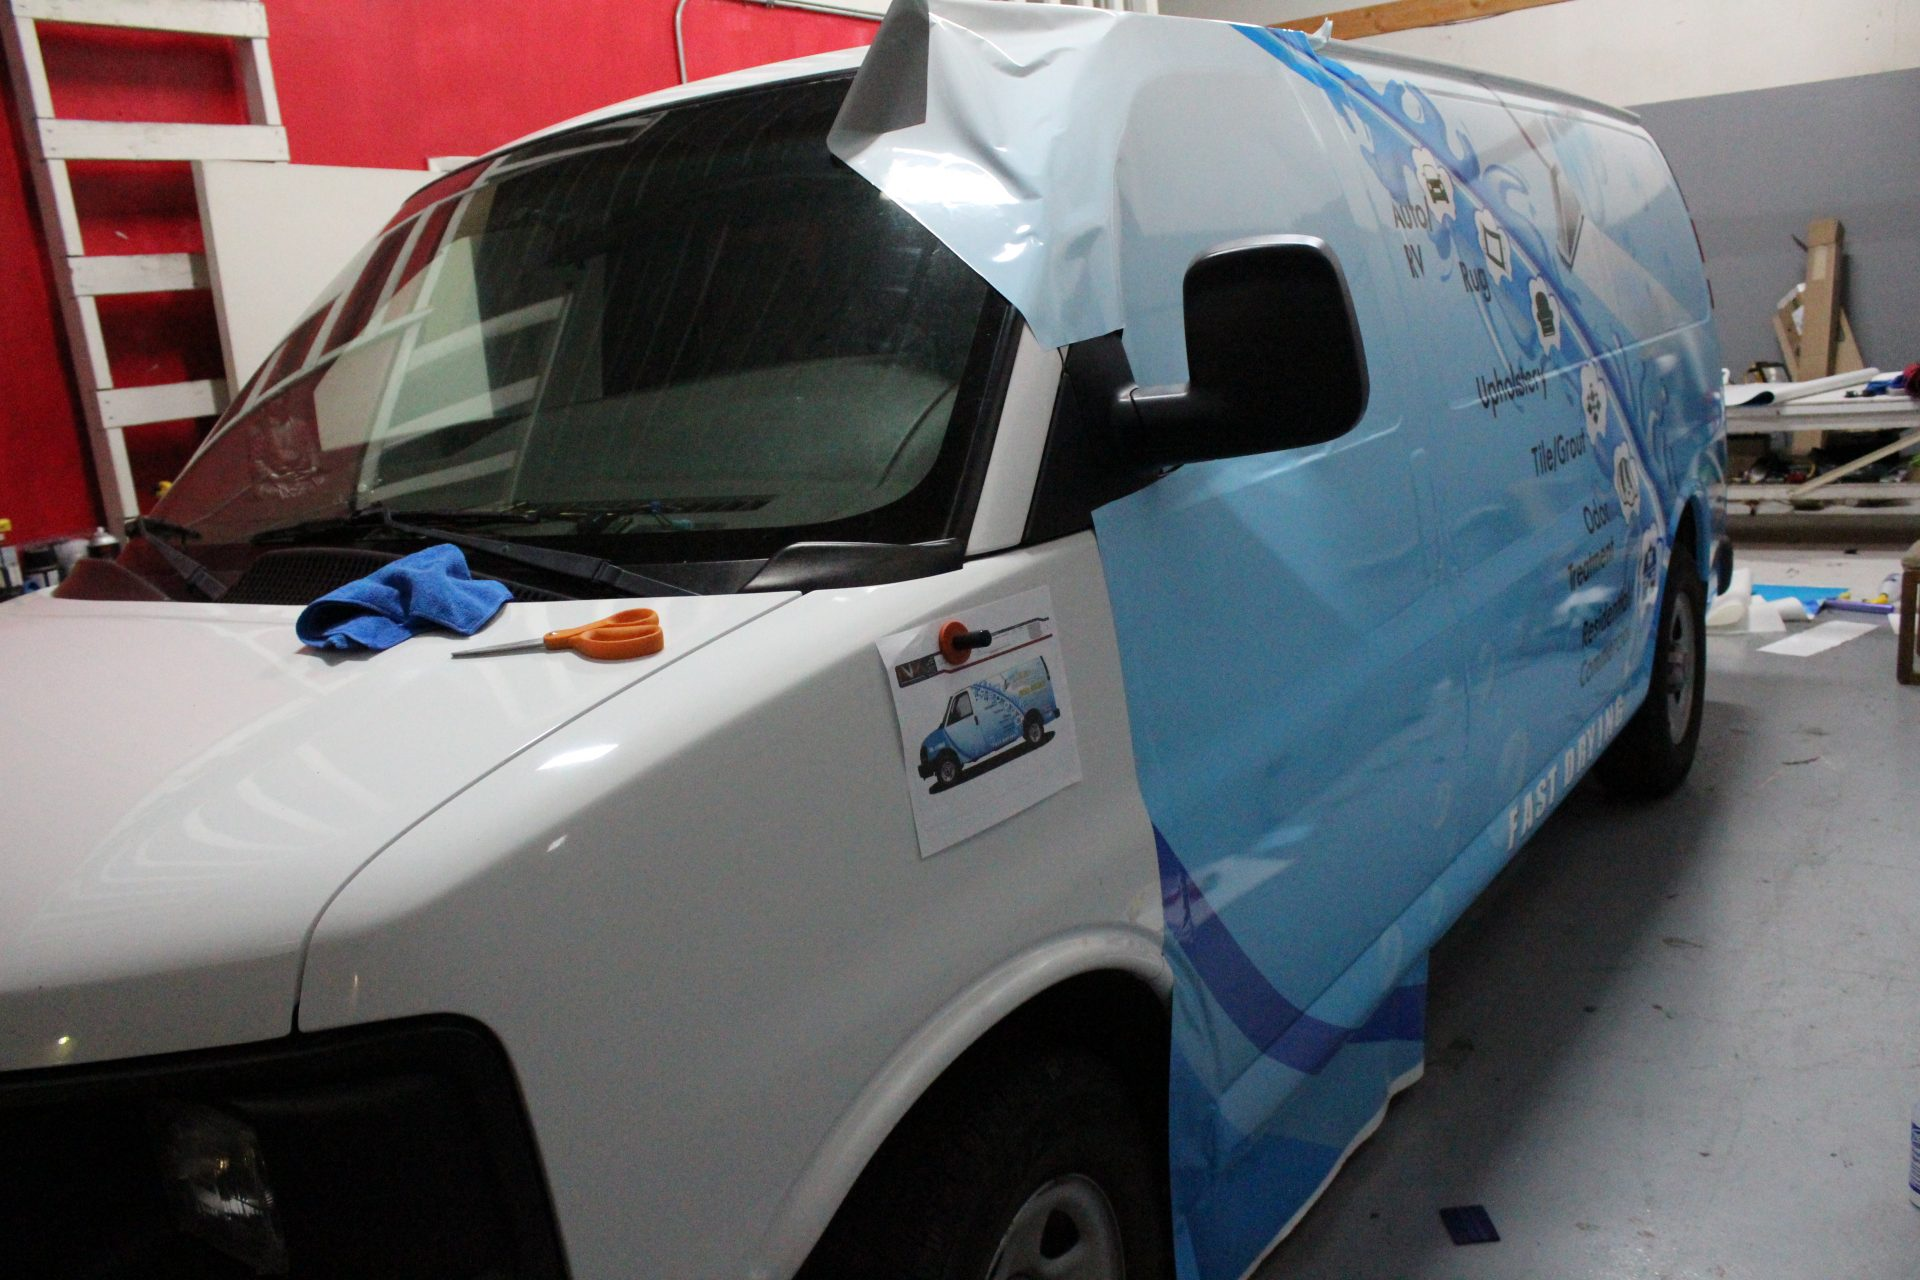 Vehicle Wrap in Progress by NV Wraps